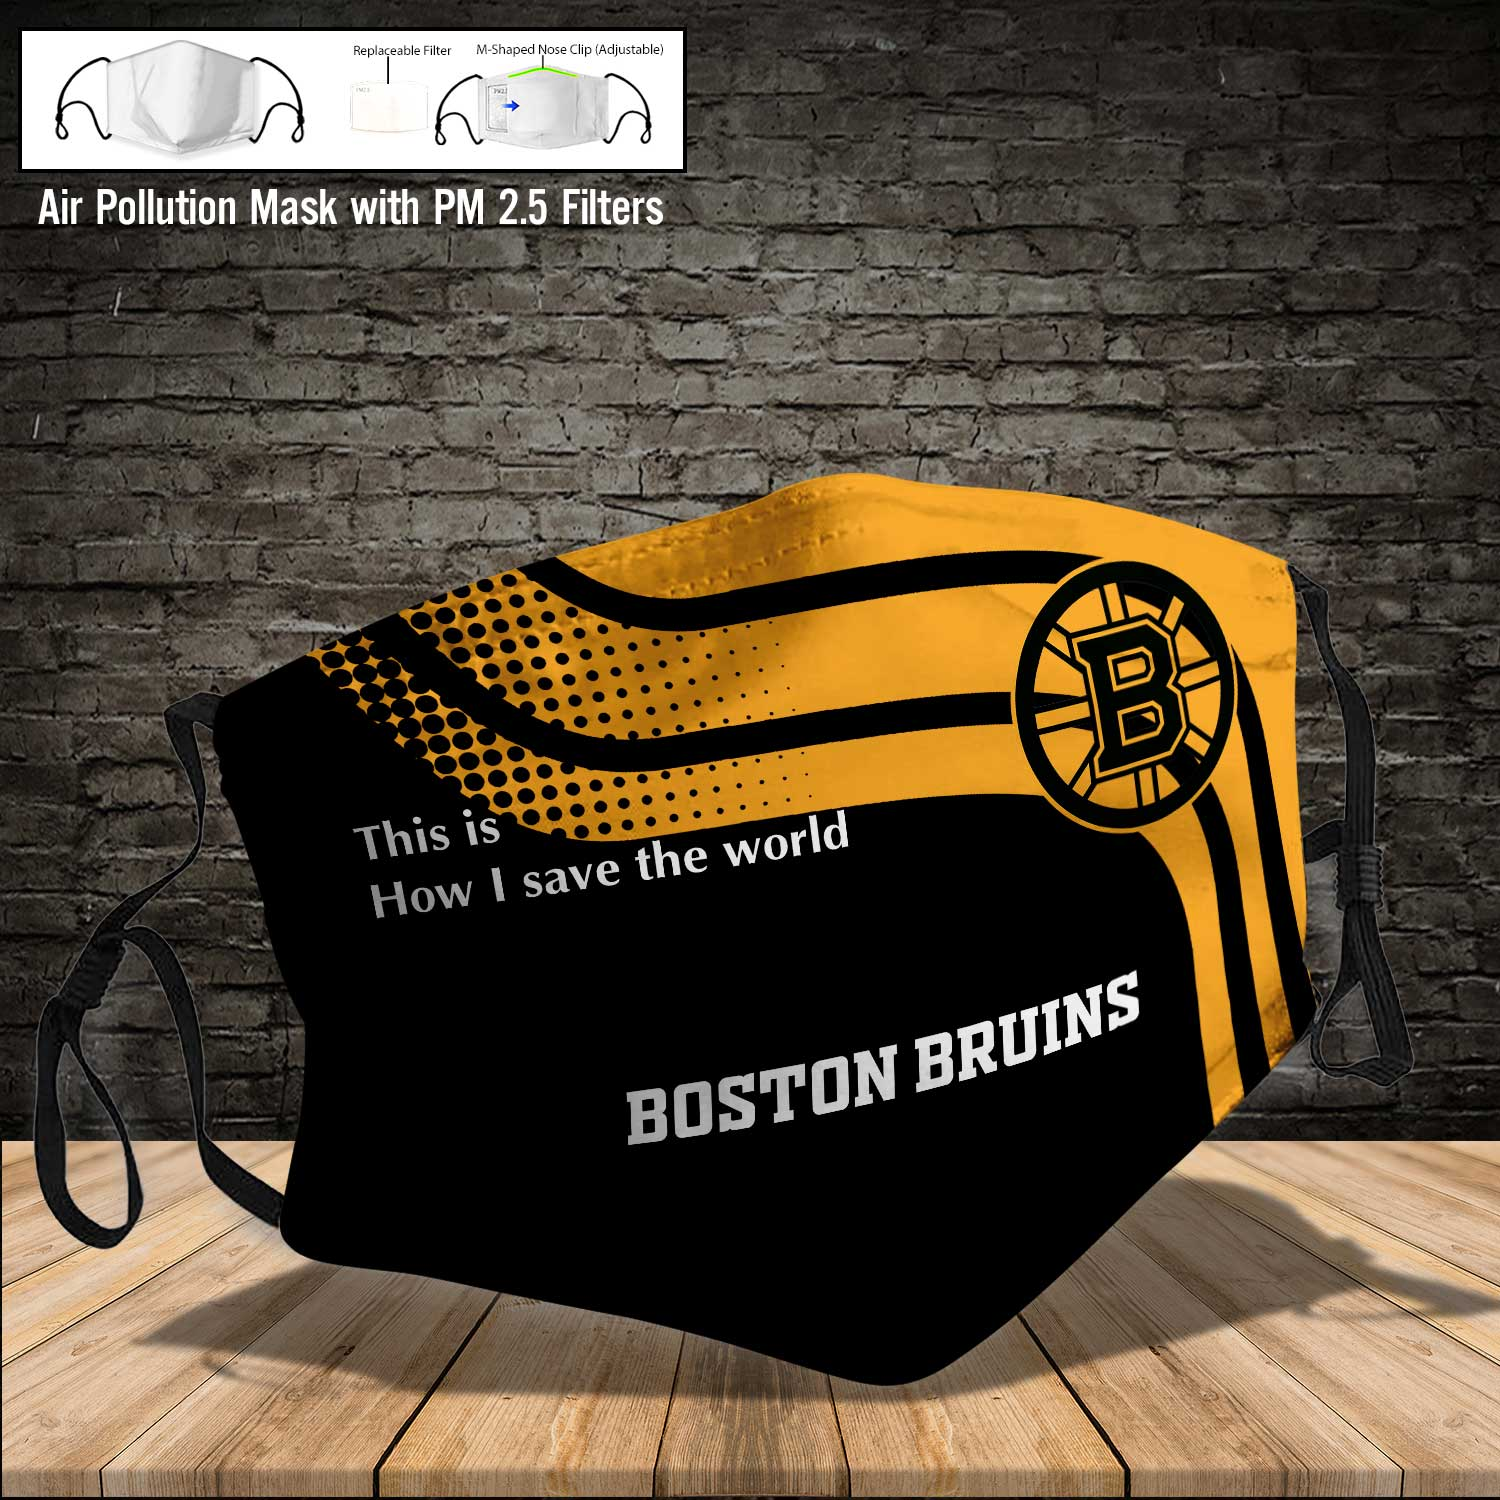 Boston bruins this is how i save the world full printing face mask 4